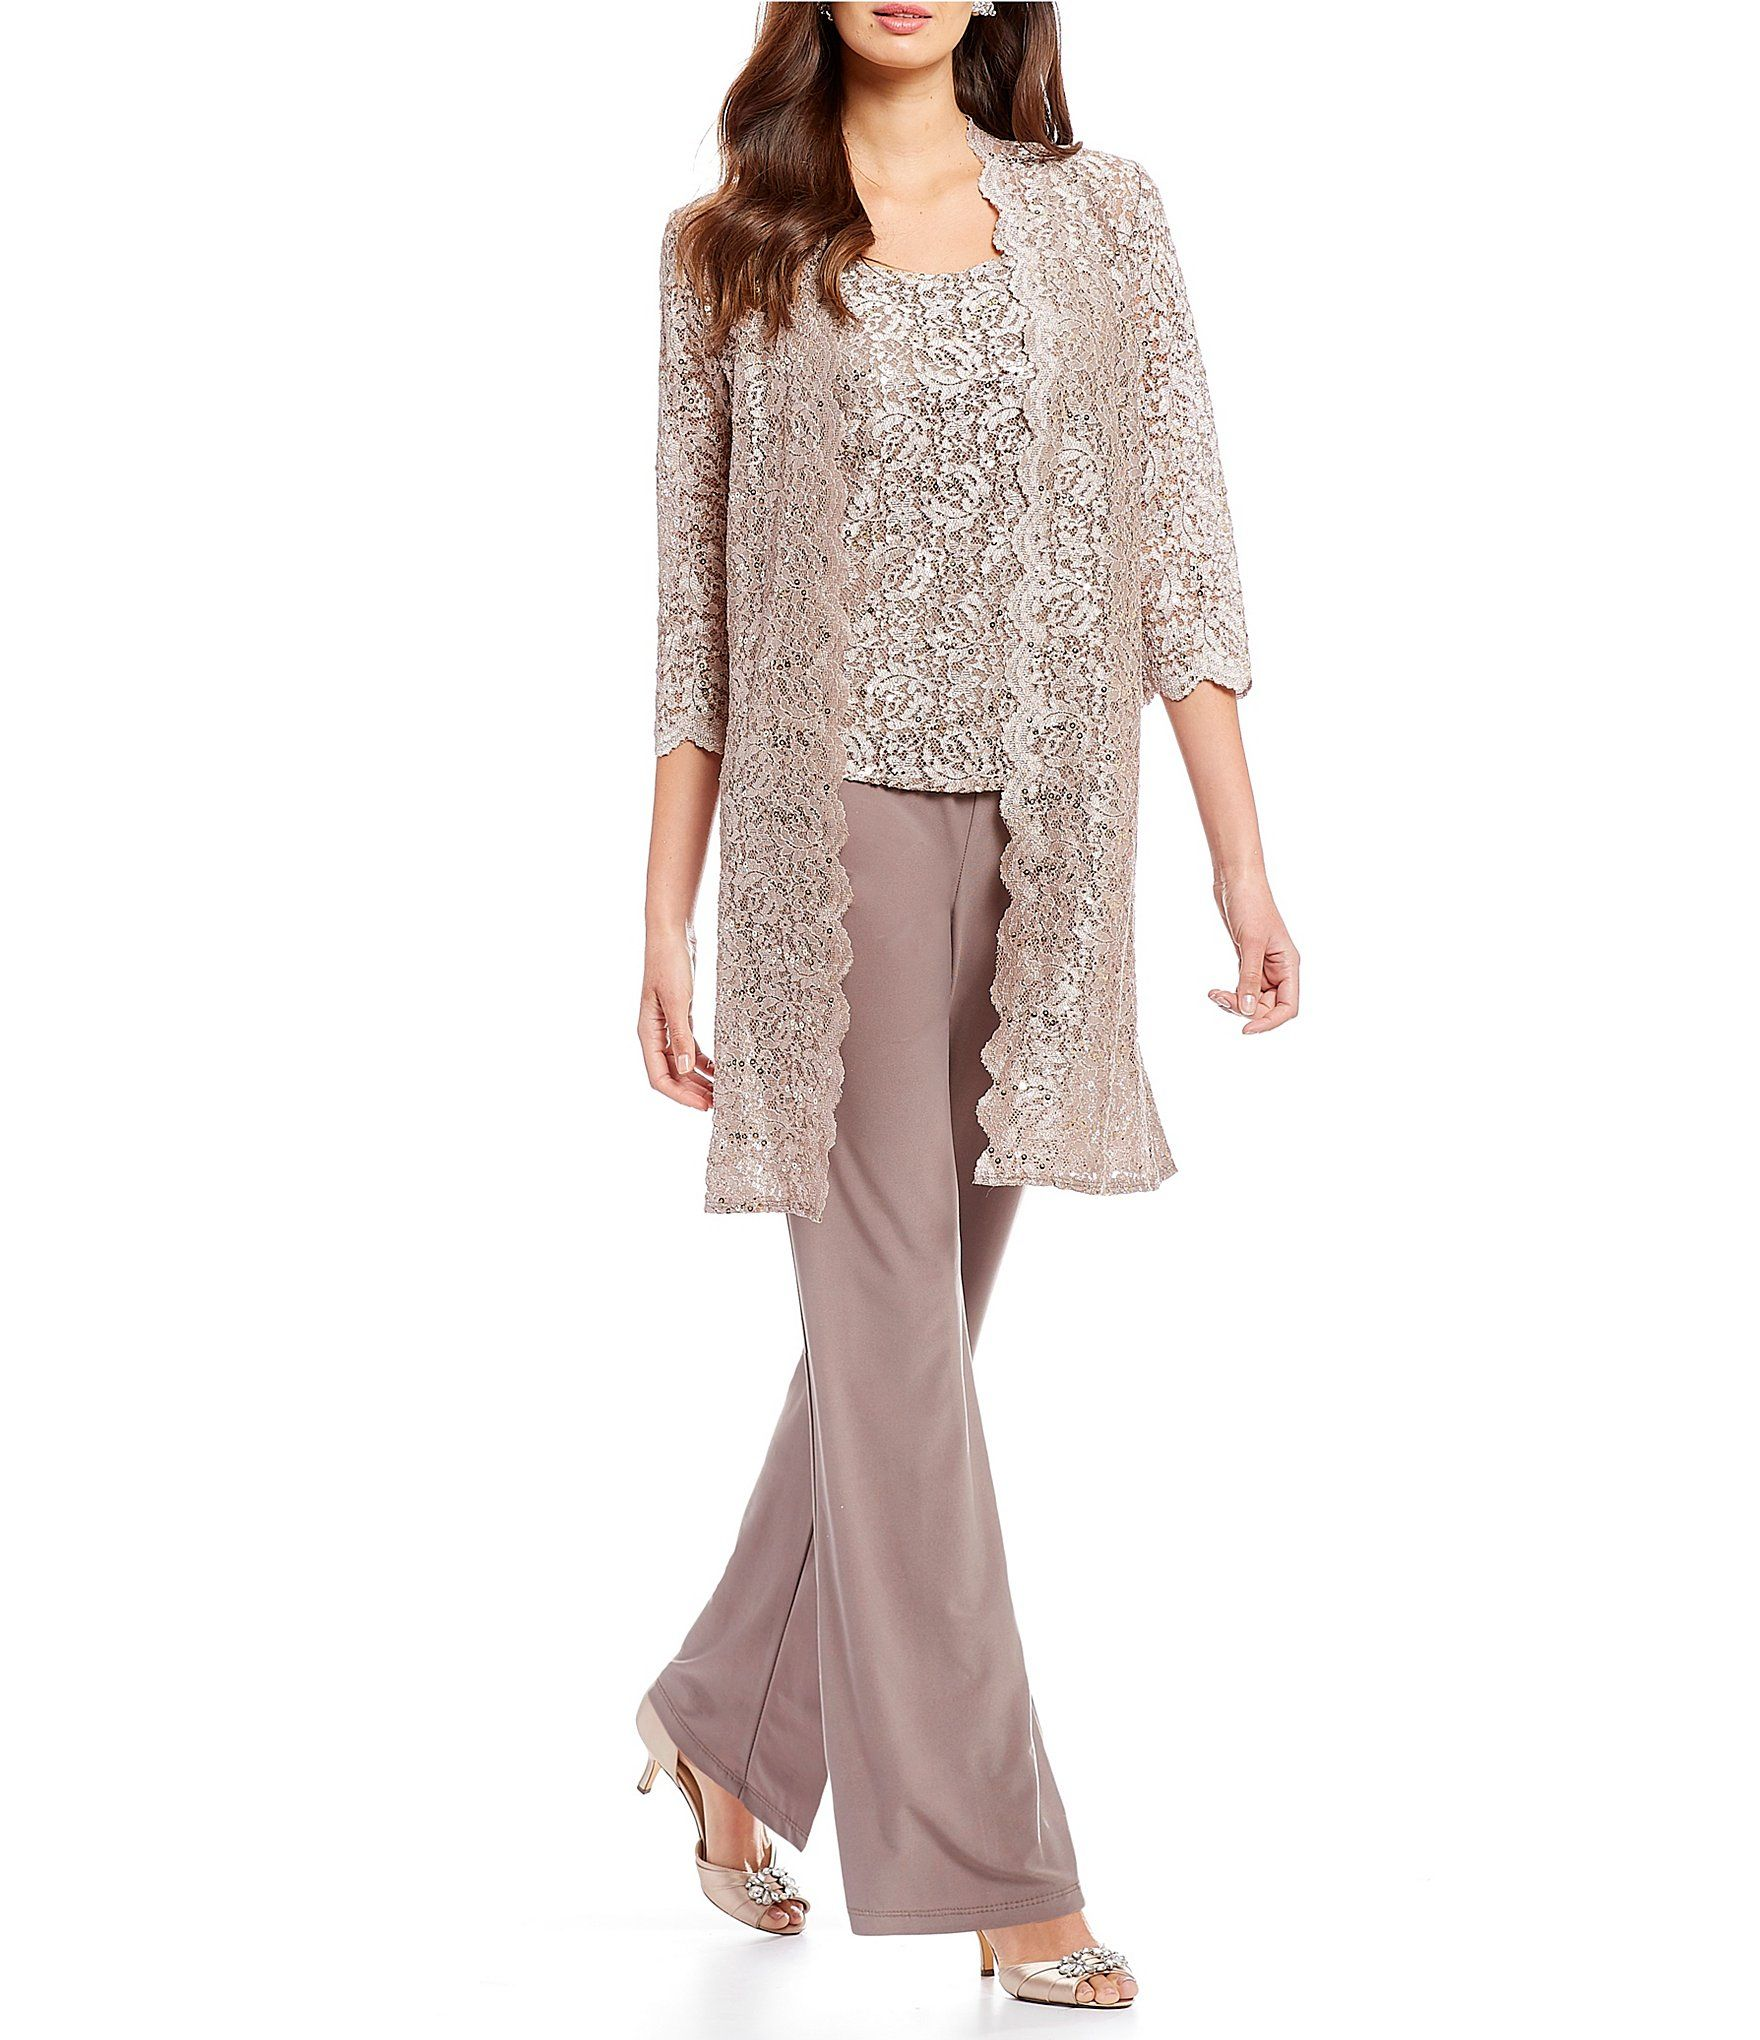 R & M Richards 3-Piece Sequin Glitter Scallop Lace Duster ...